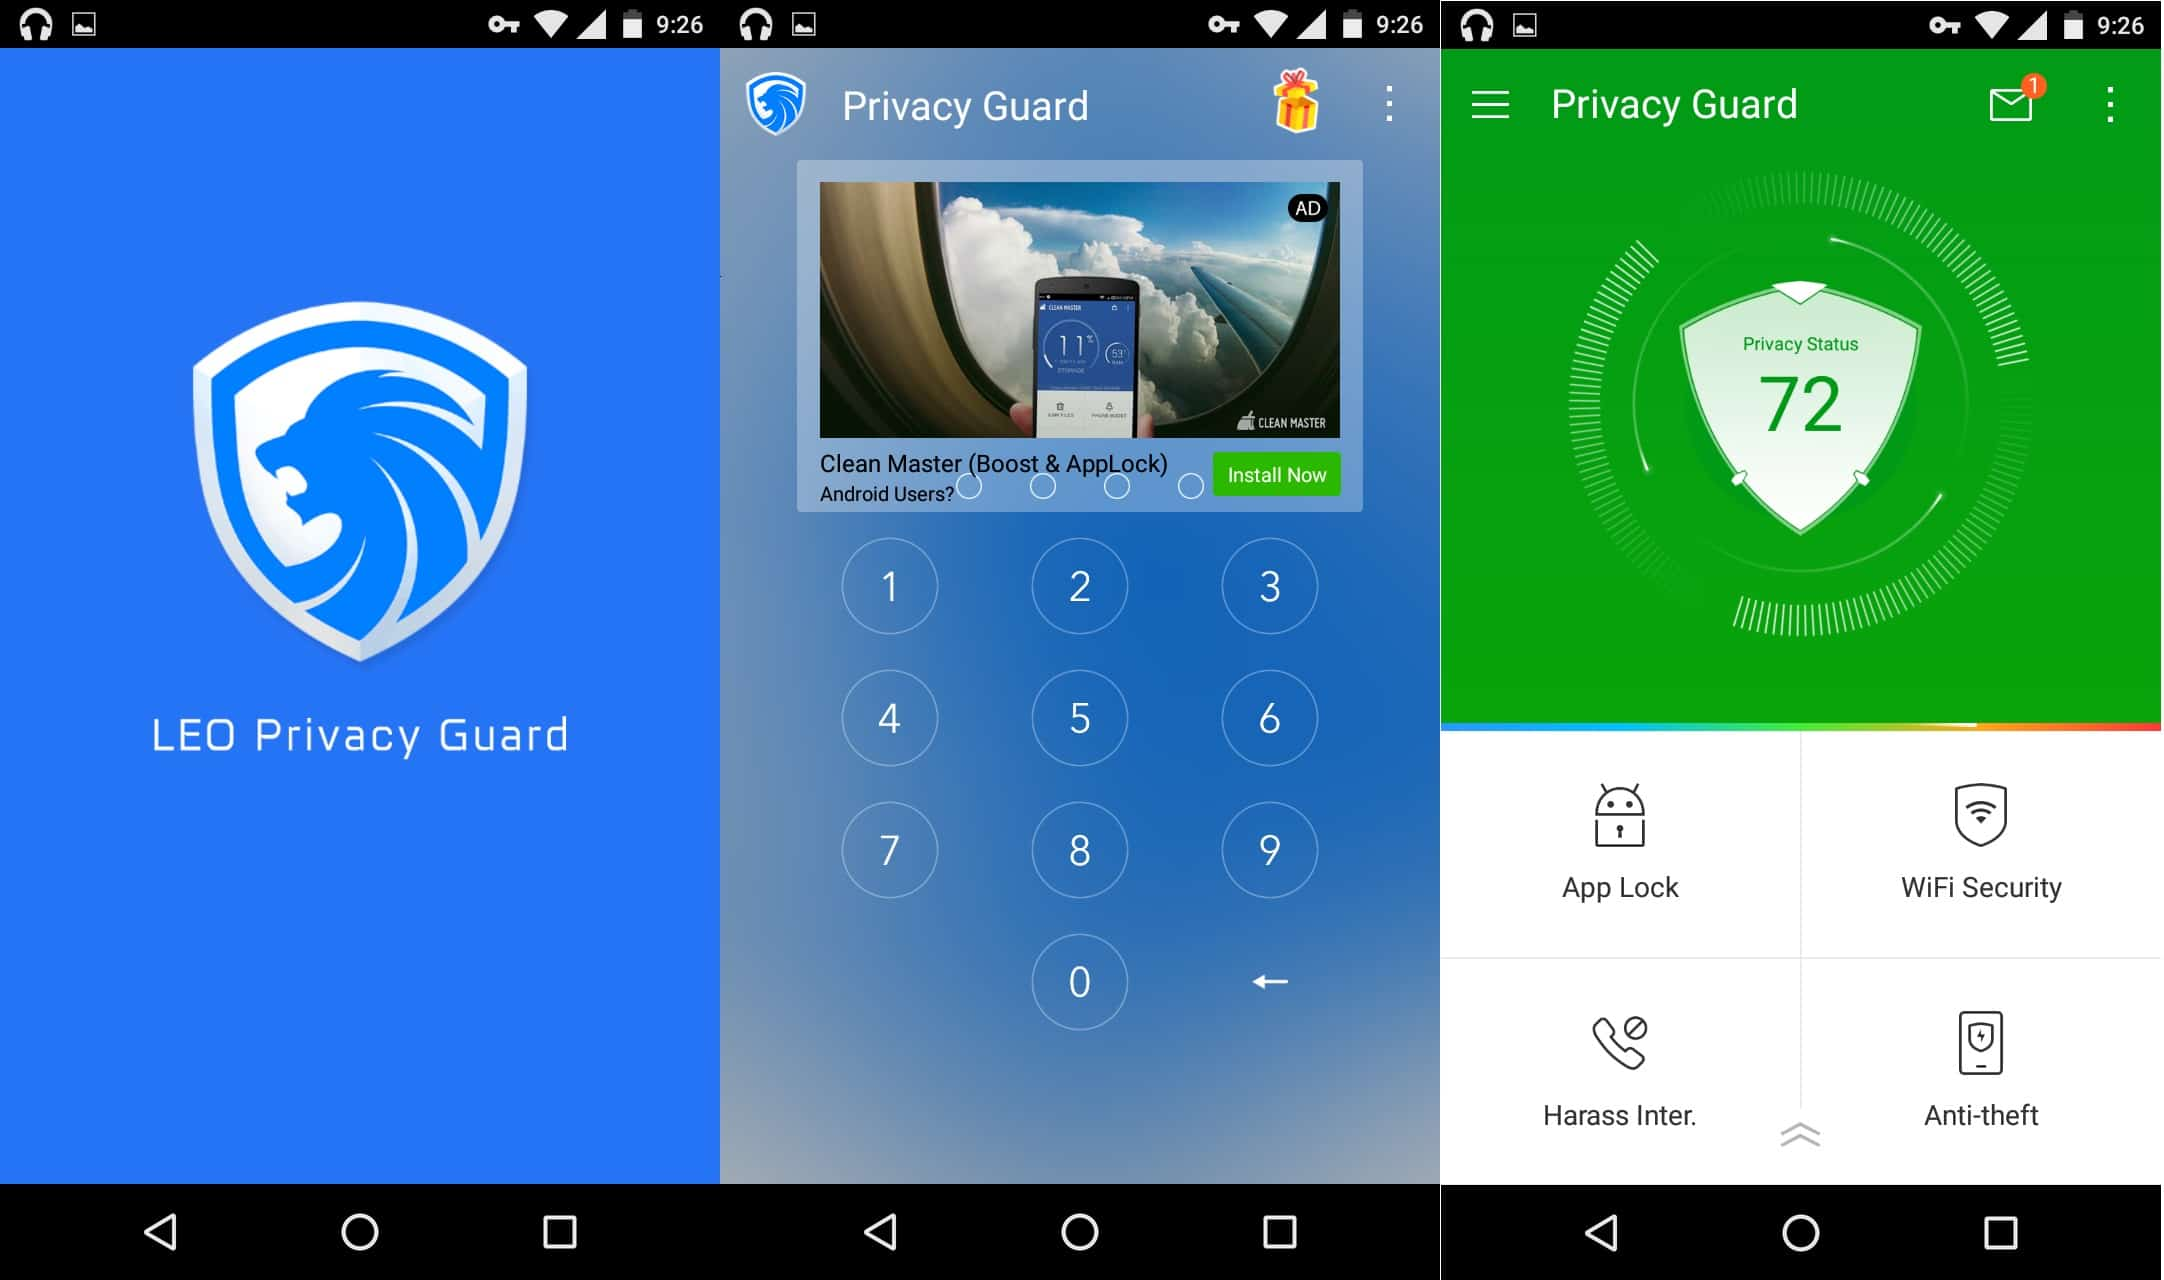 Best Privacy App - Leo Privacy Guard App for Android - Best Privacy App for Android